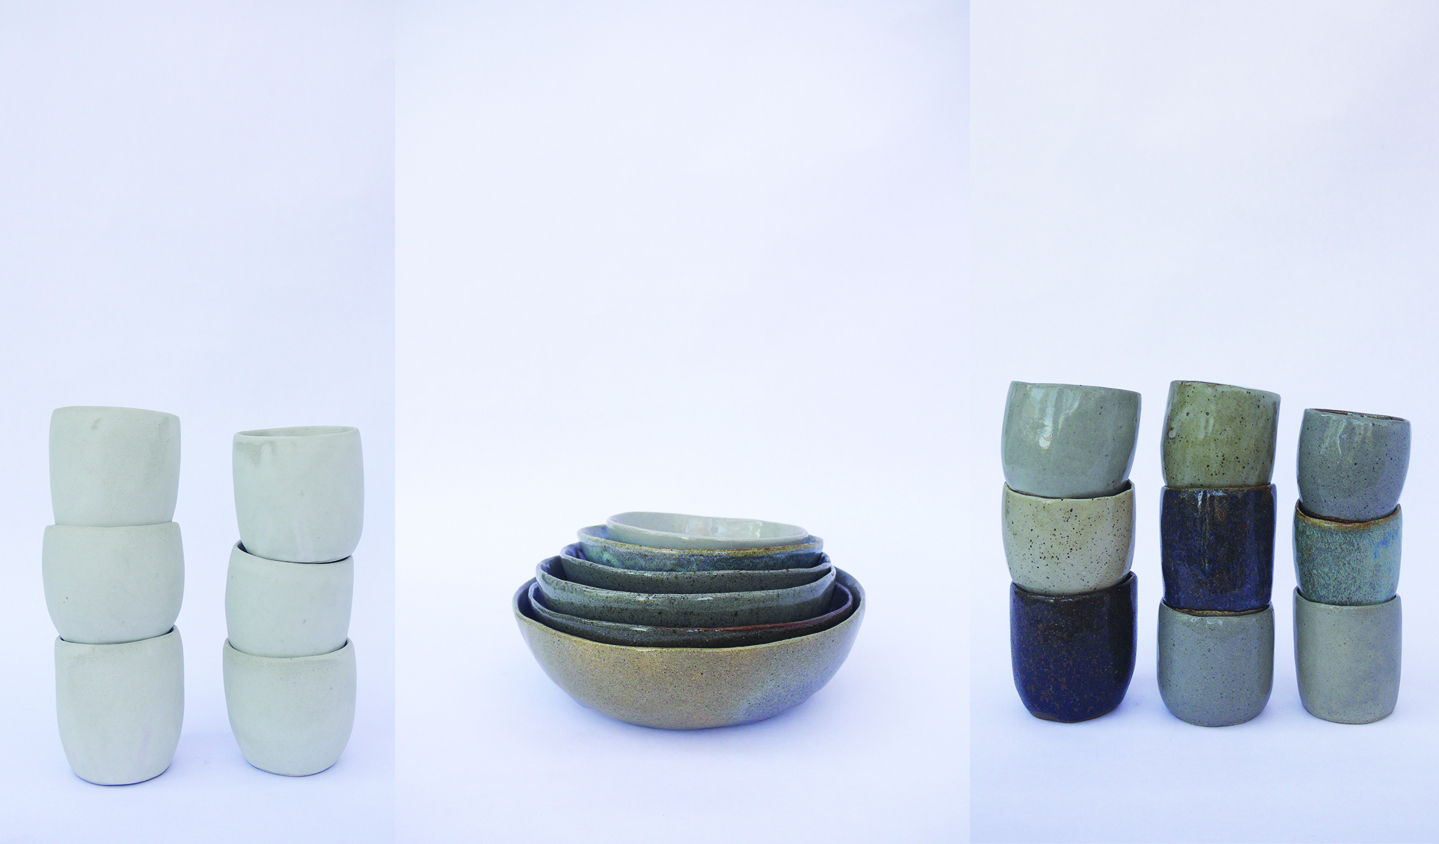 Vessels_Cups and Bowls_for Web.jpg